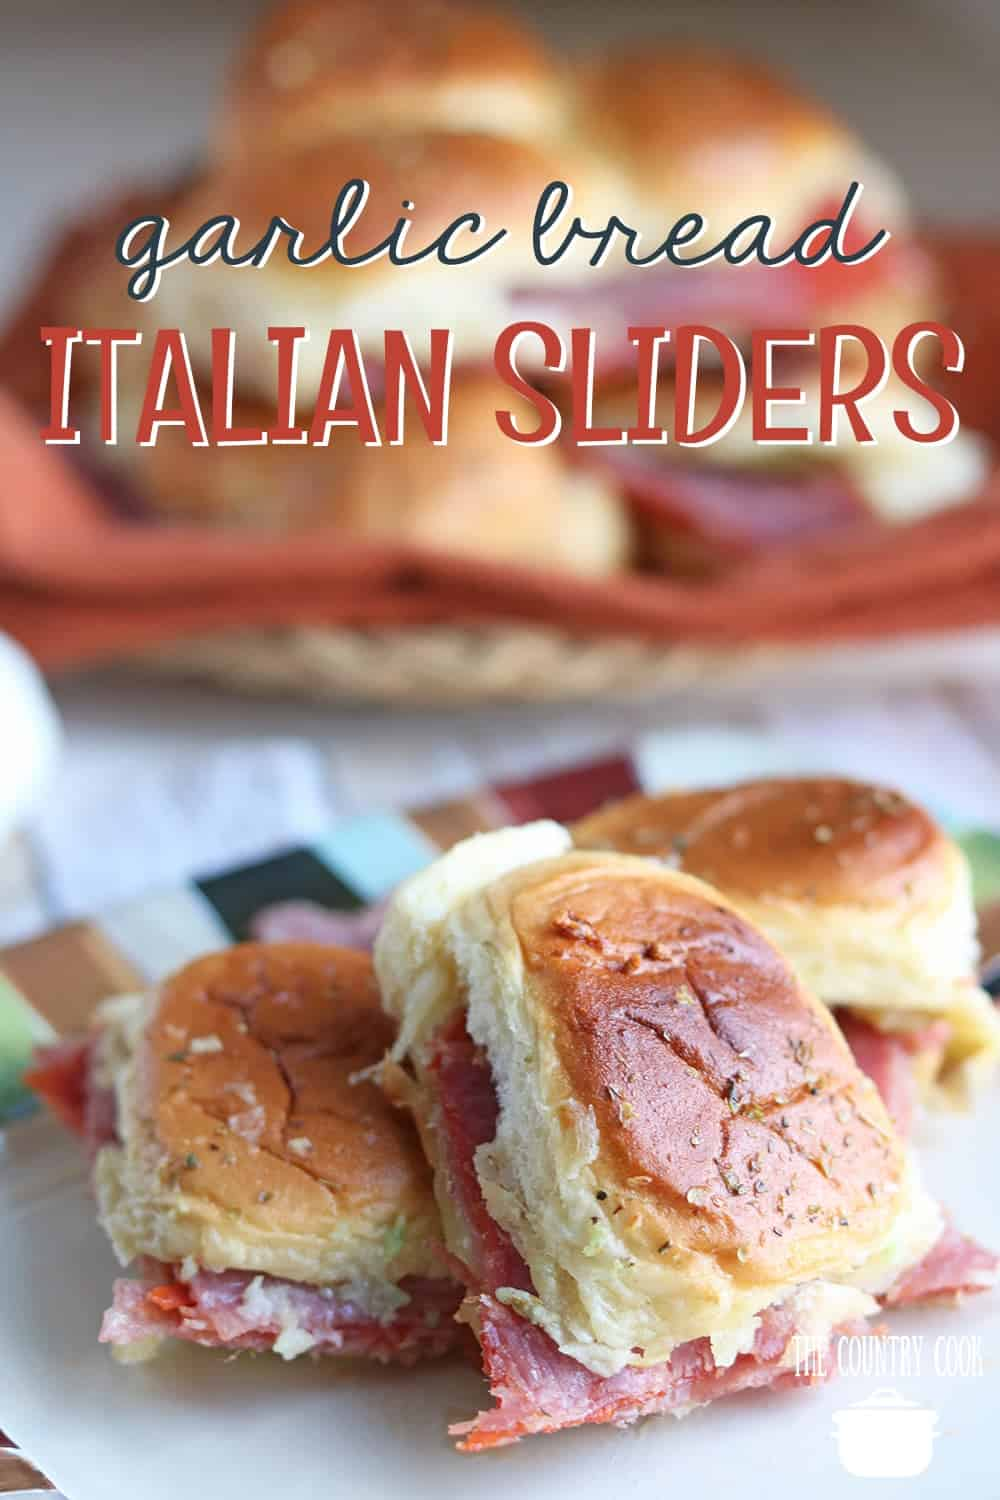 Easy Garlic Bread Italian Sliders recipe from The Country Cook